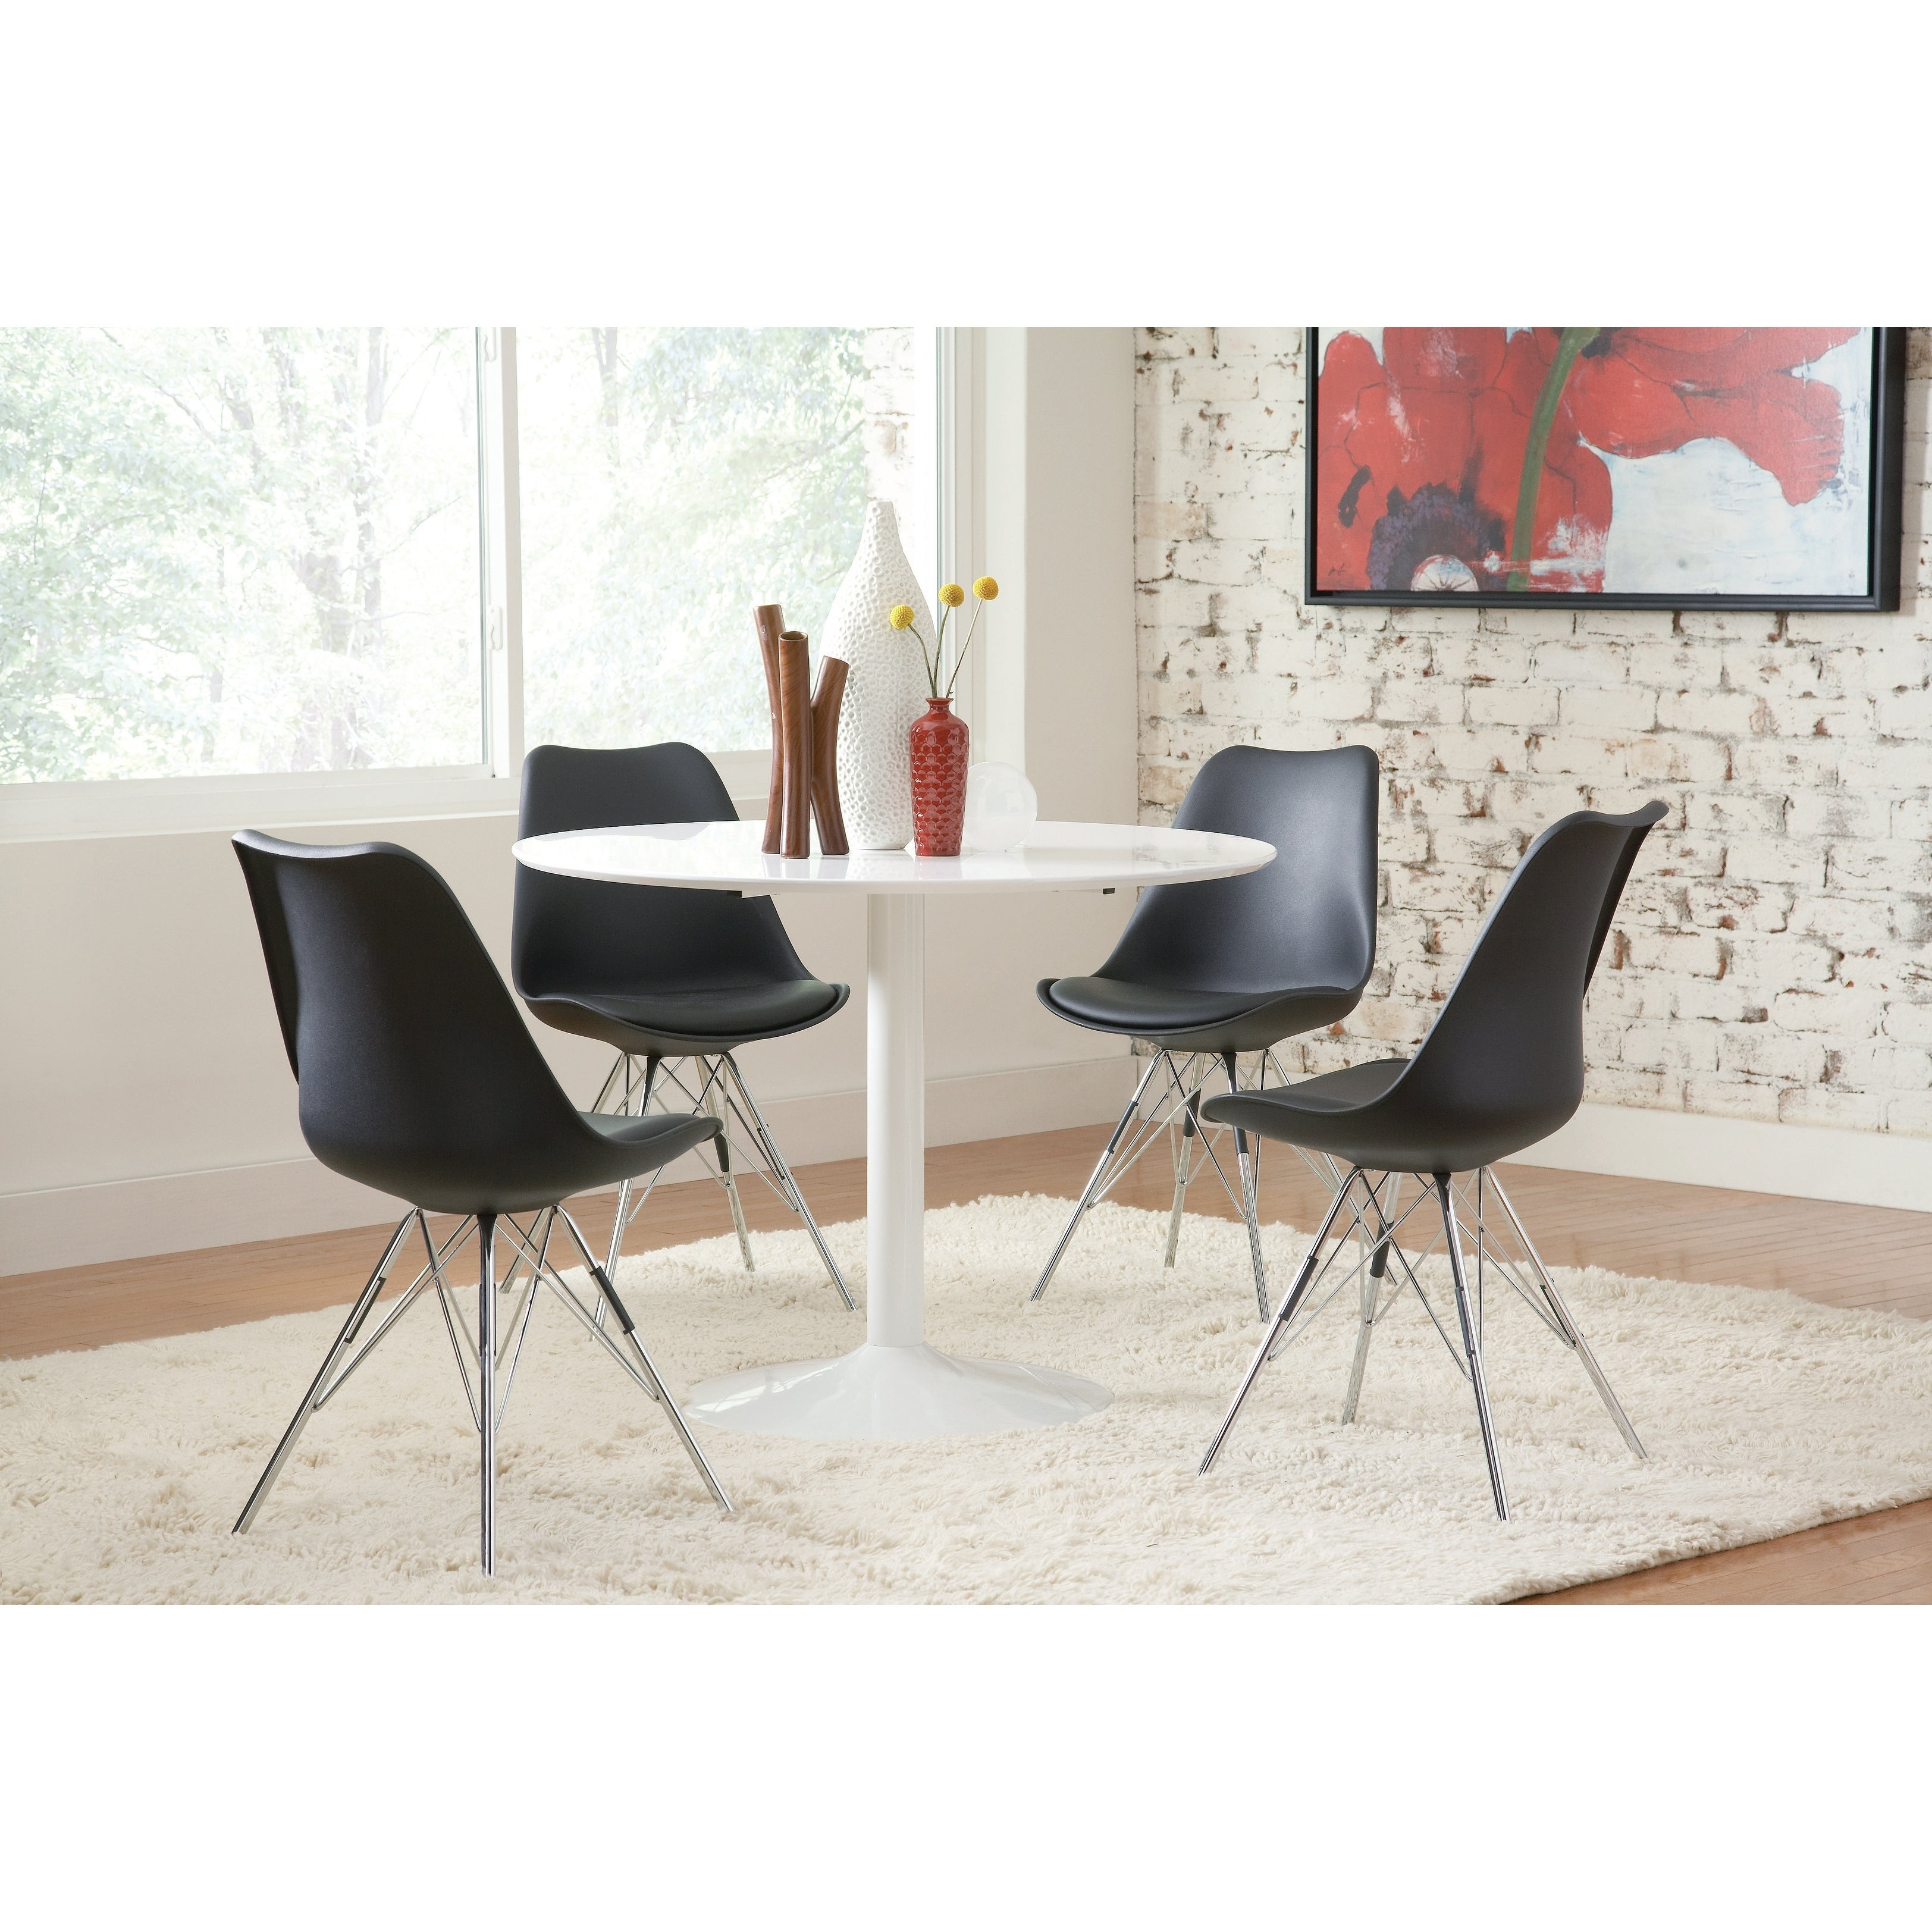 b5729b73e994 Shop Lowry Mid-century Modern White Round Dining Table - Free Shipping  Today - Overstock - 22579169